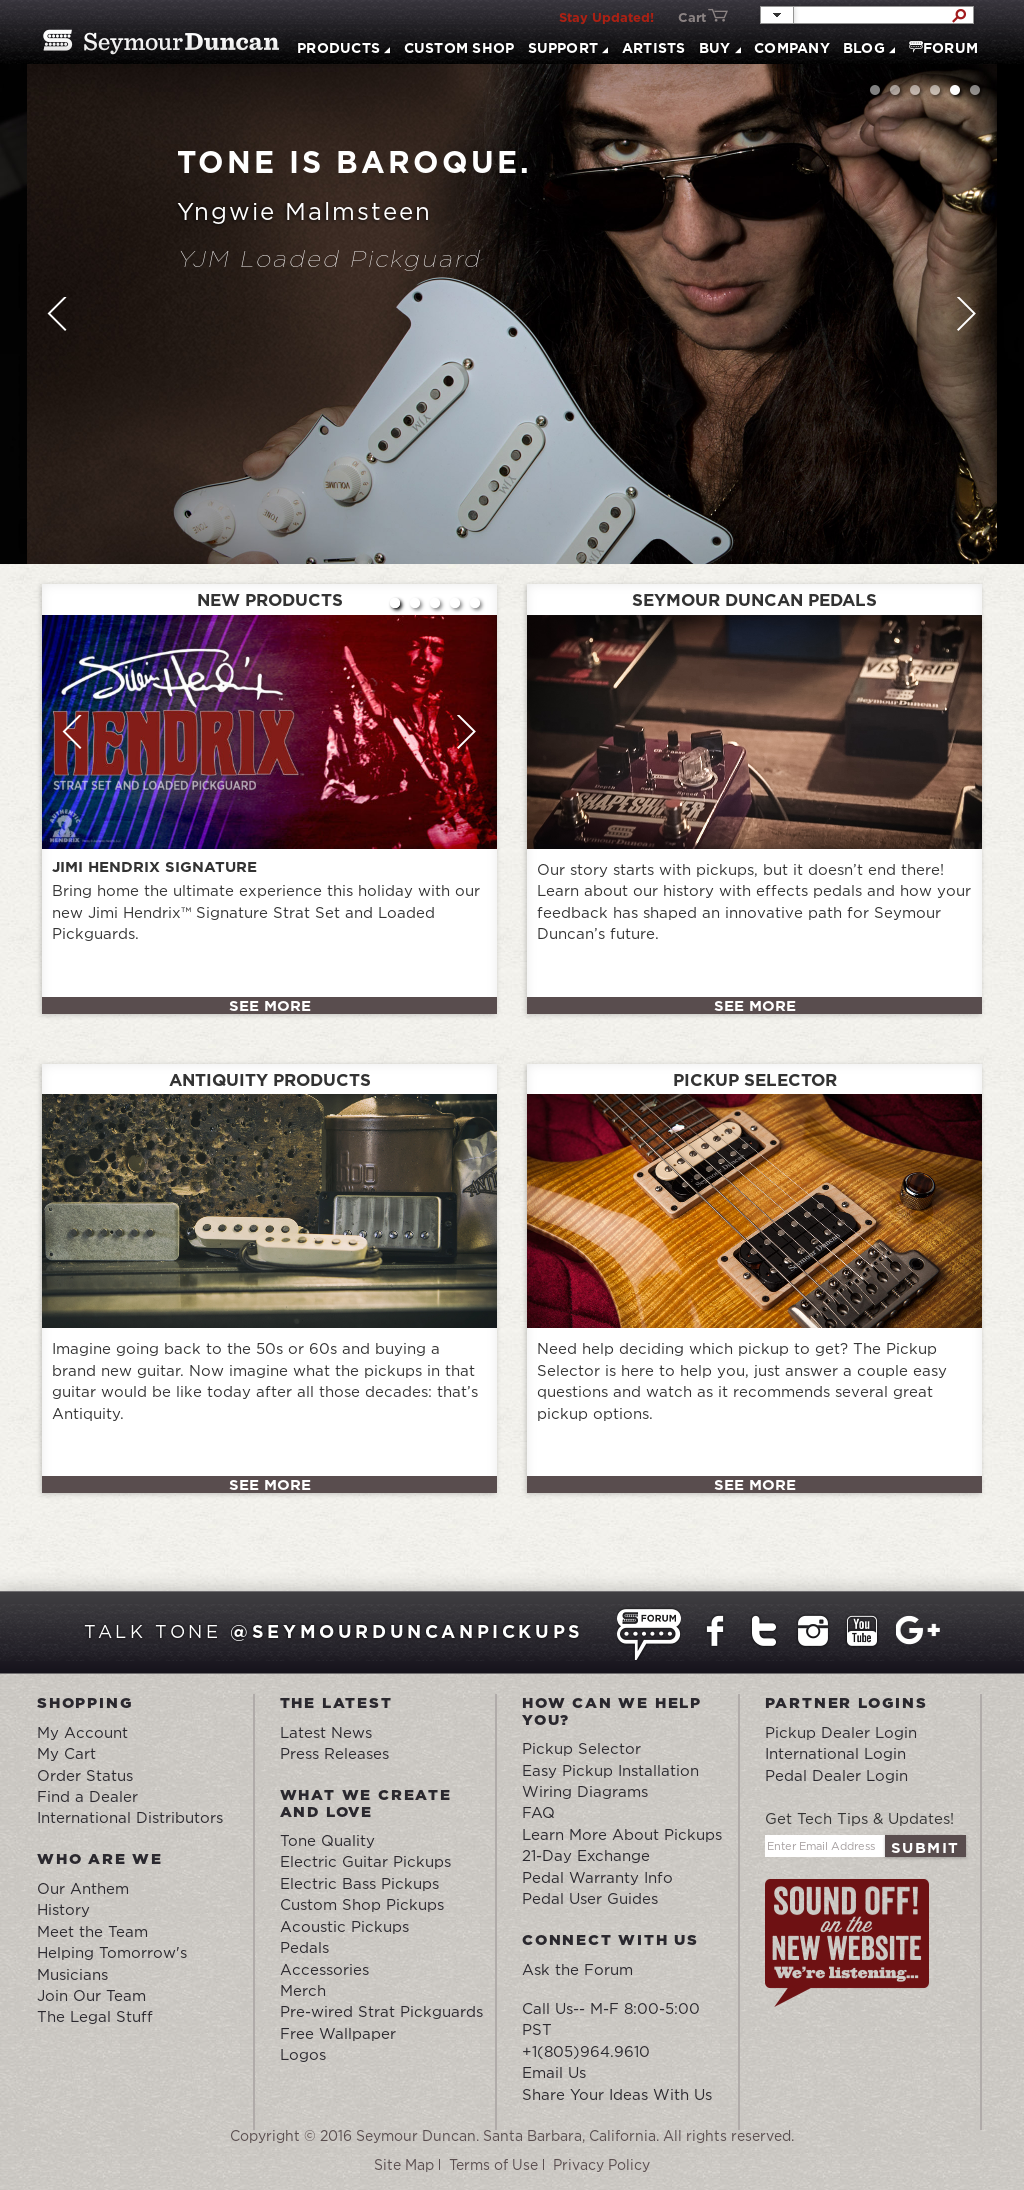 Seymourduncan Competitors, Revenue and Employees - Owler Company Profile